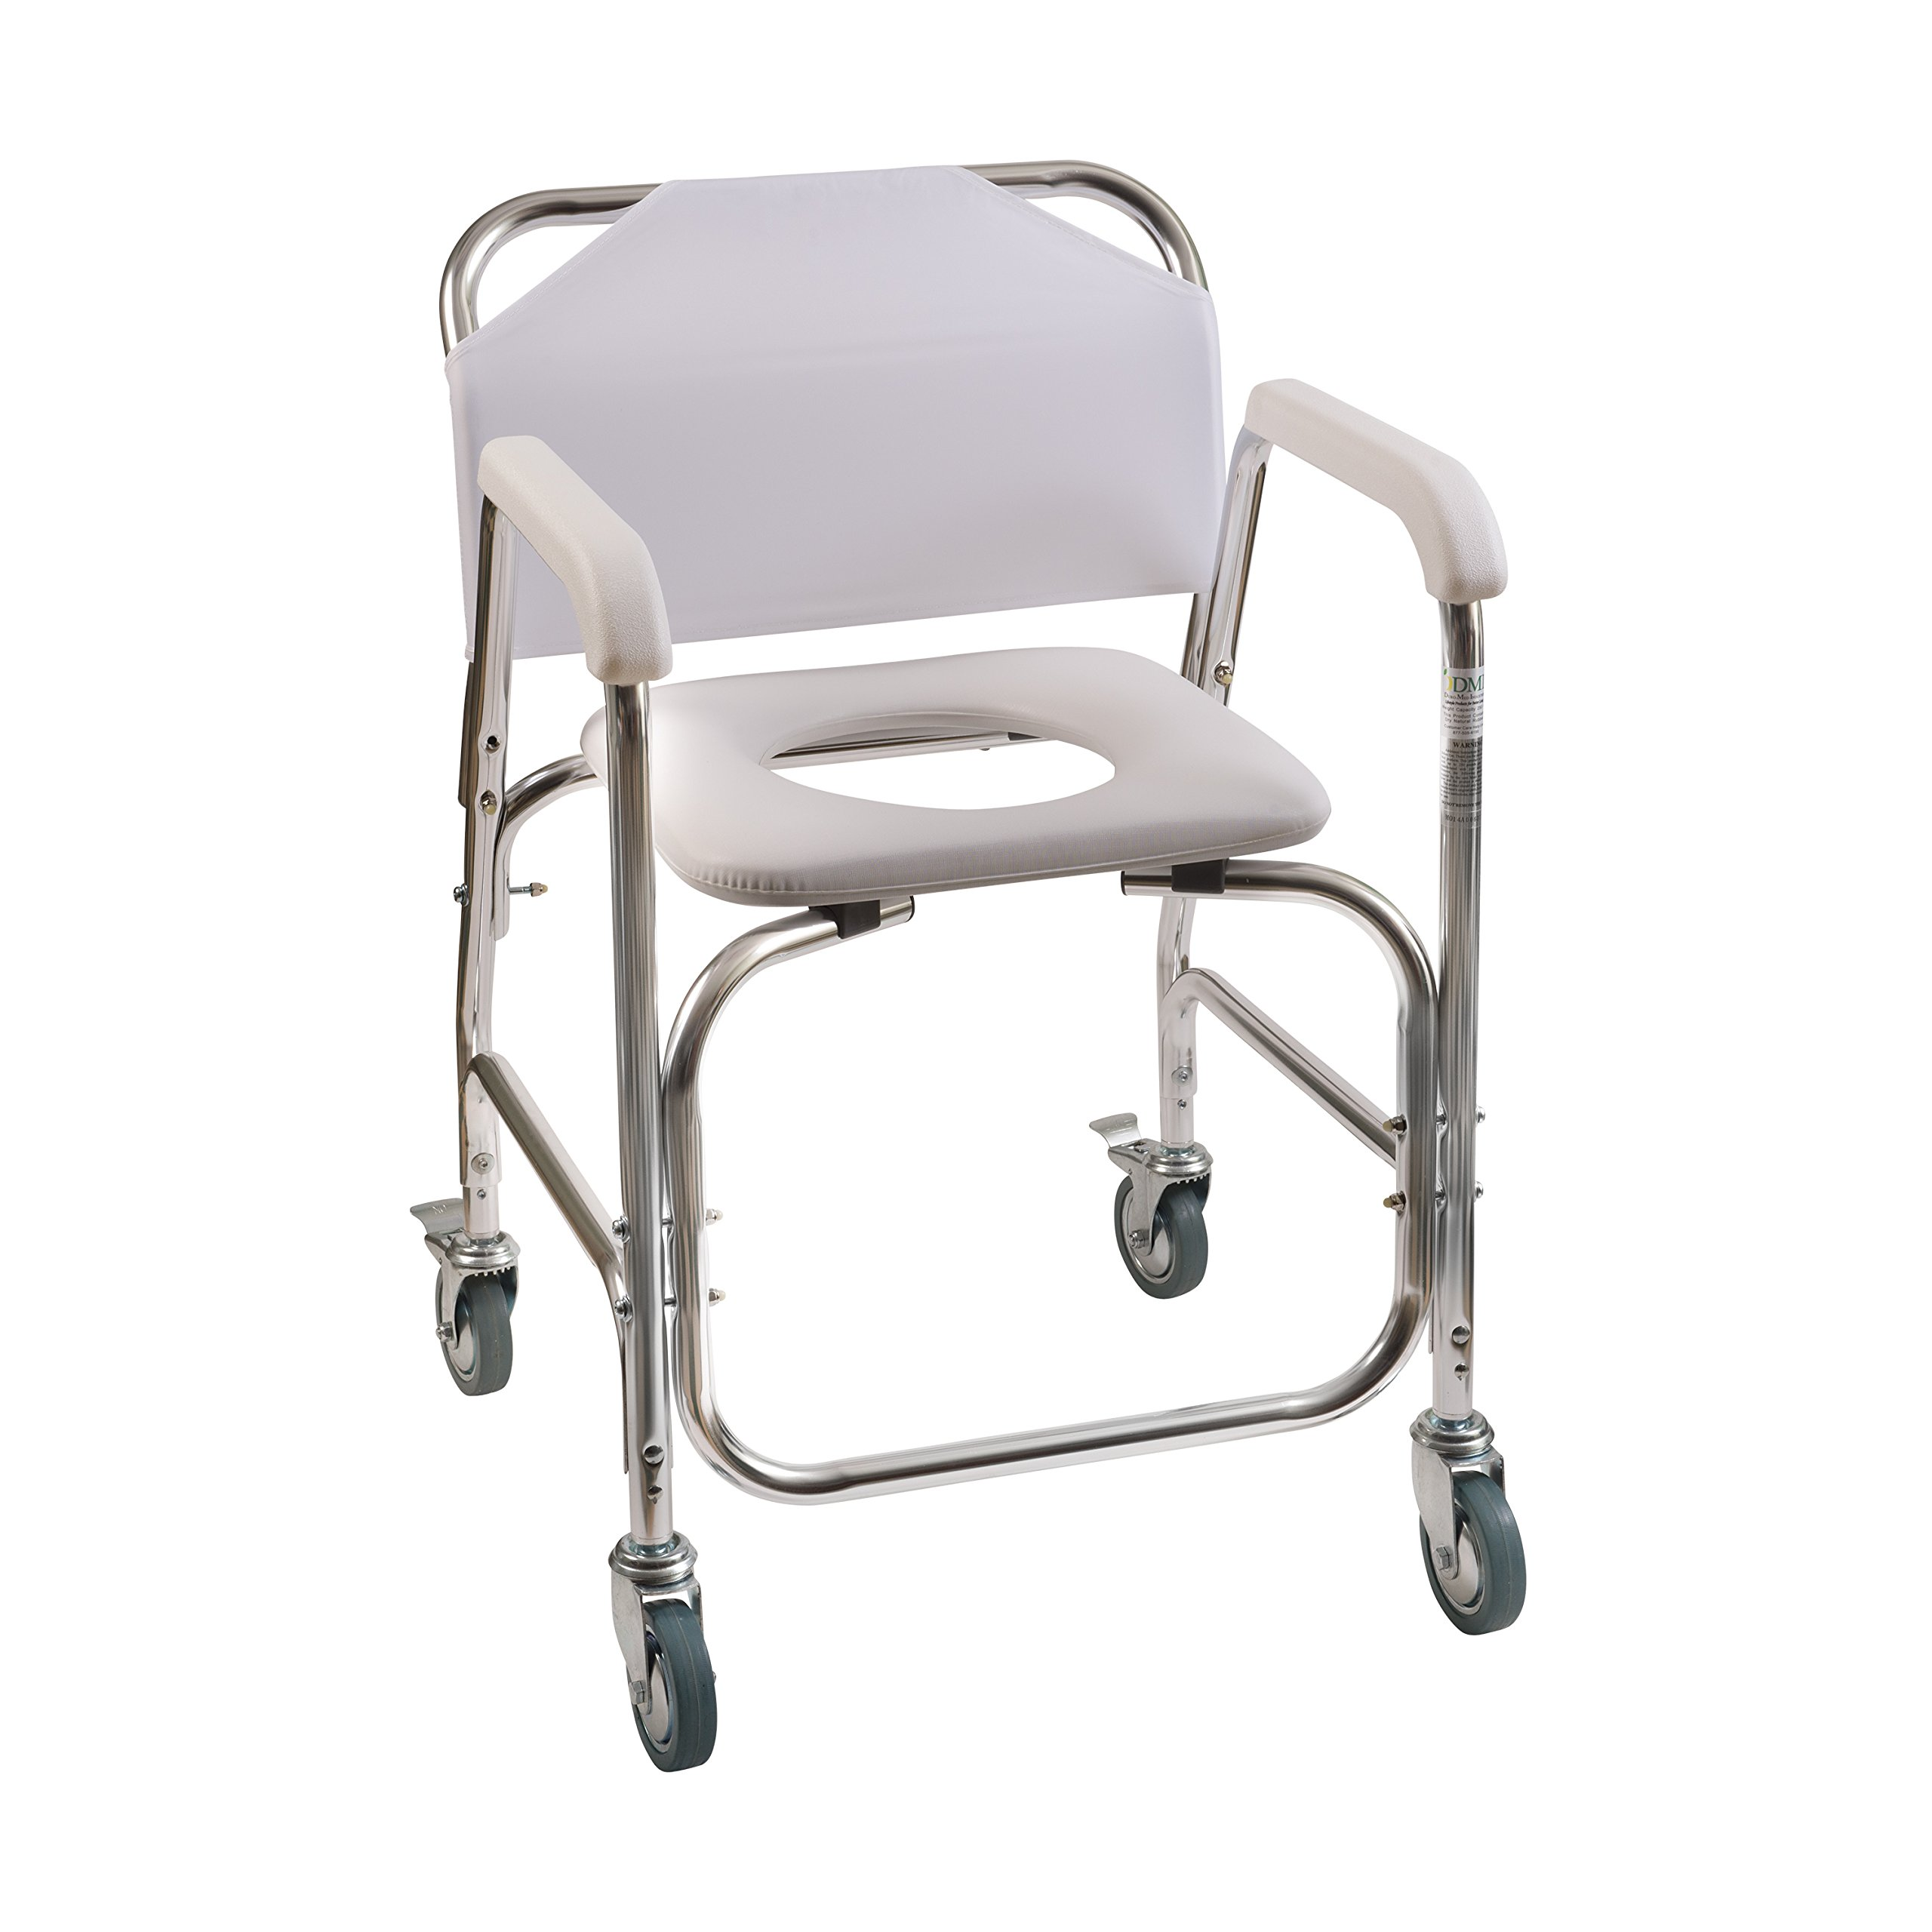 Best rolling shower chairs for disabled | Amazon.com